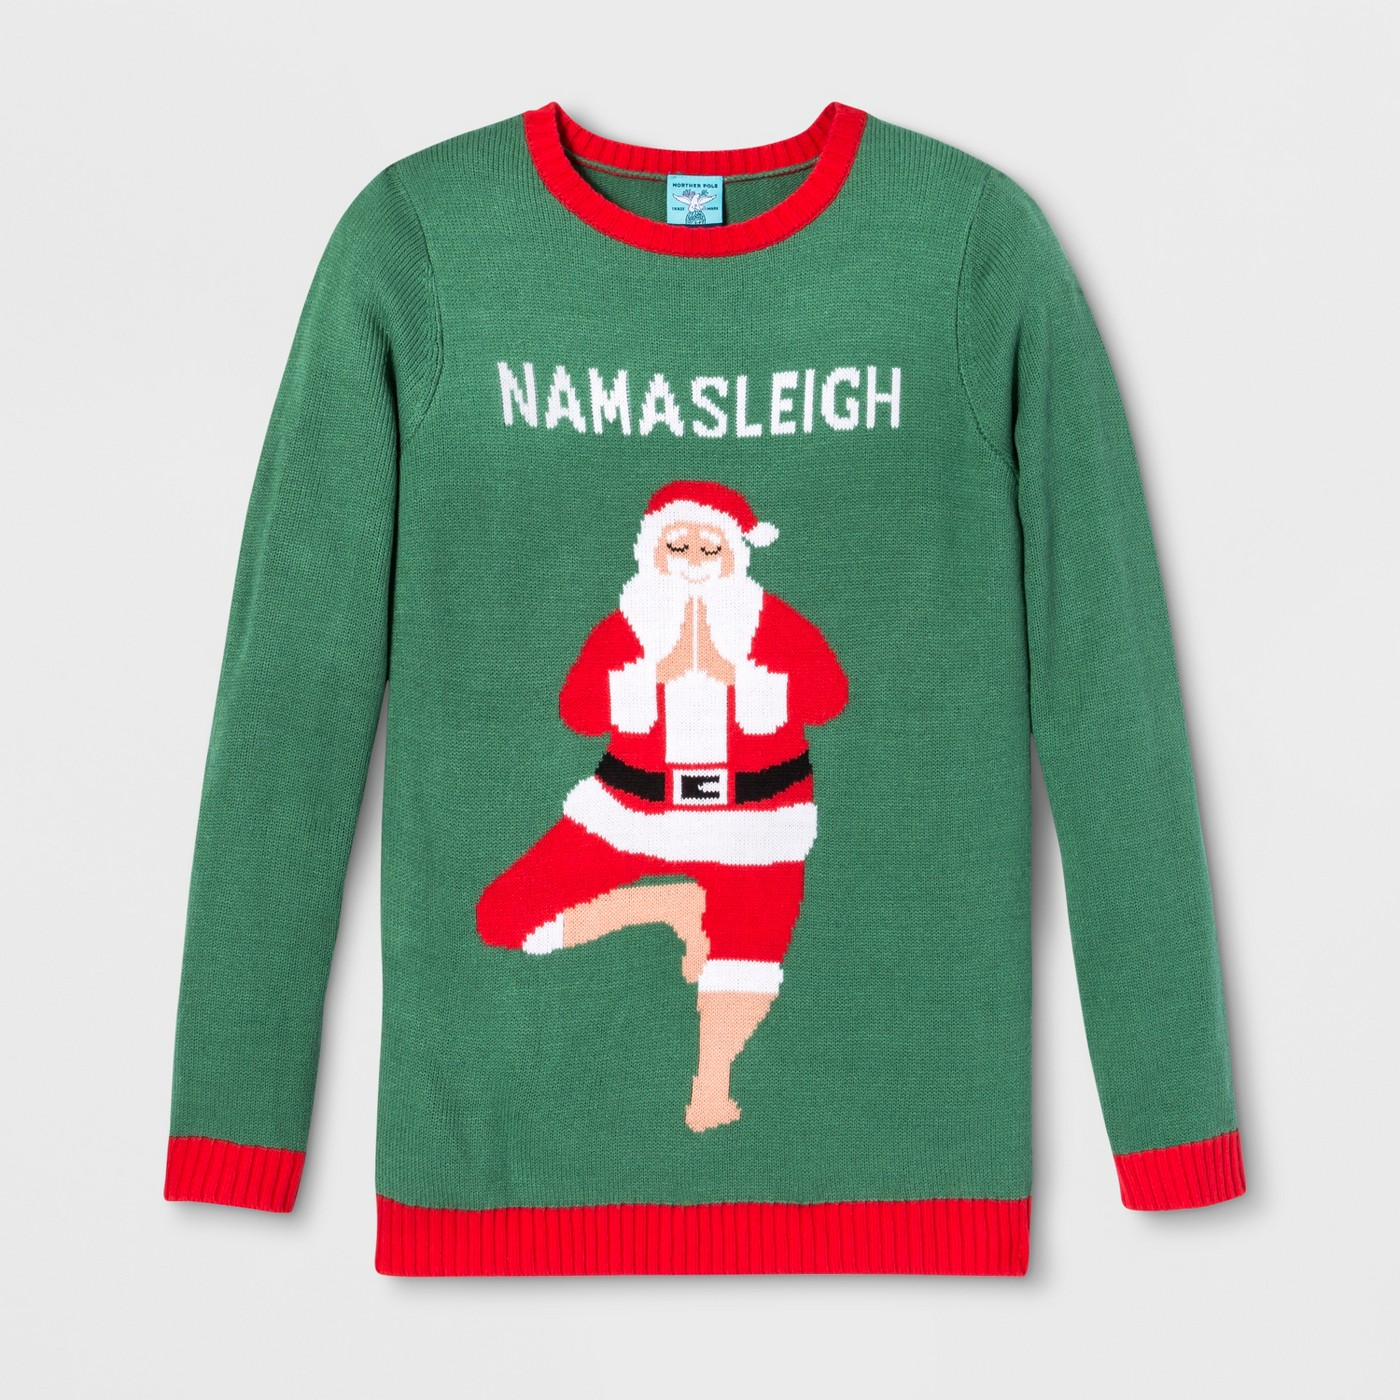 Womens Christmas Sweaters Namasleigh